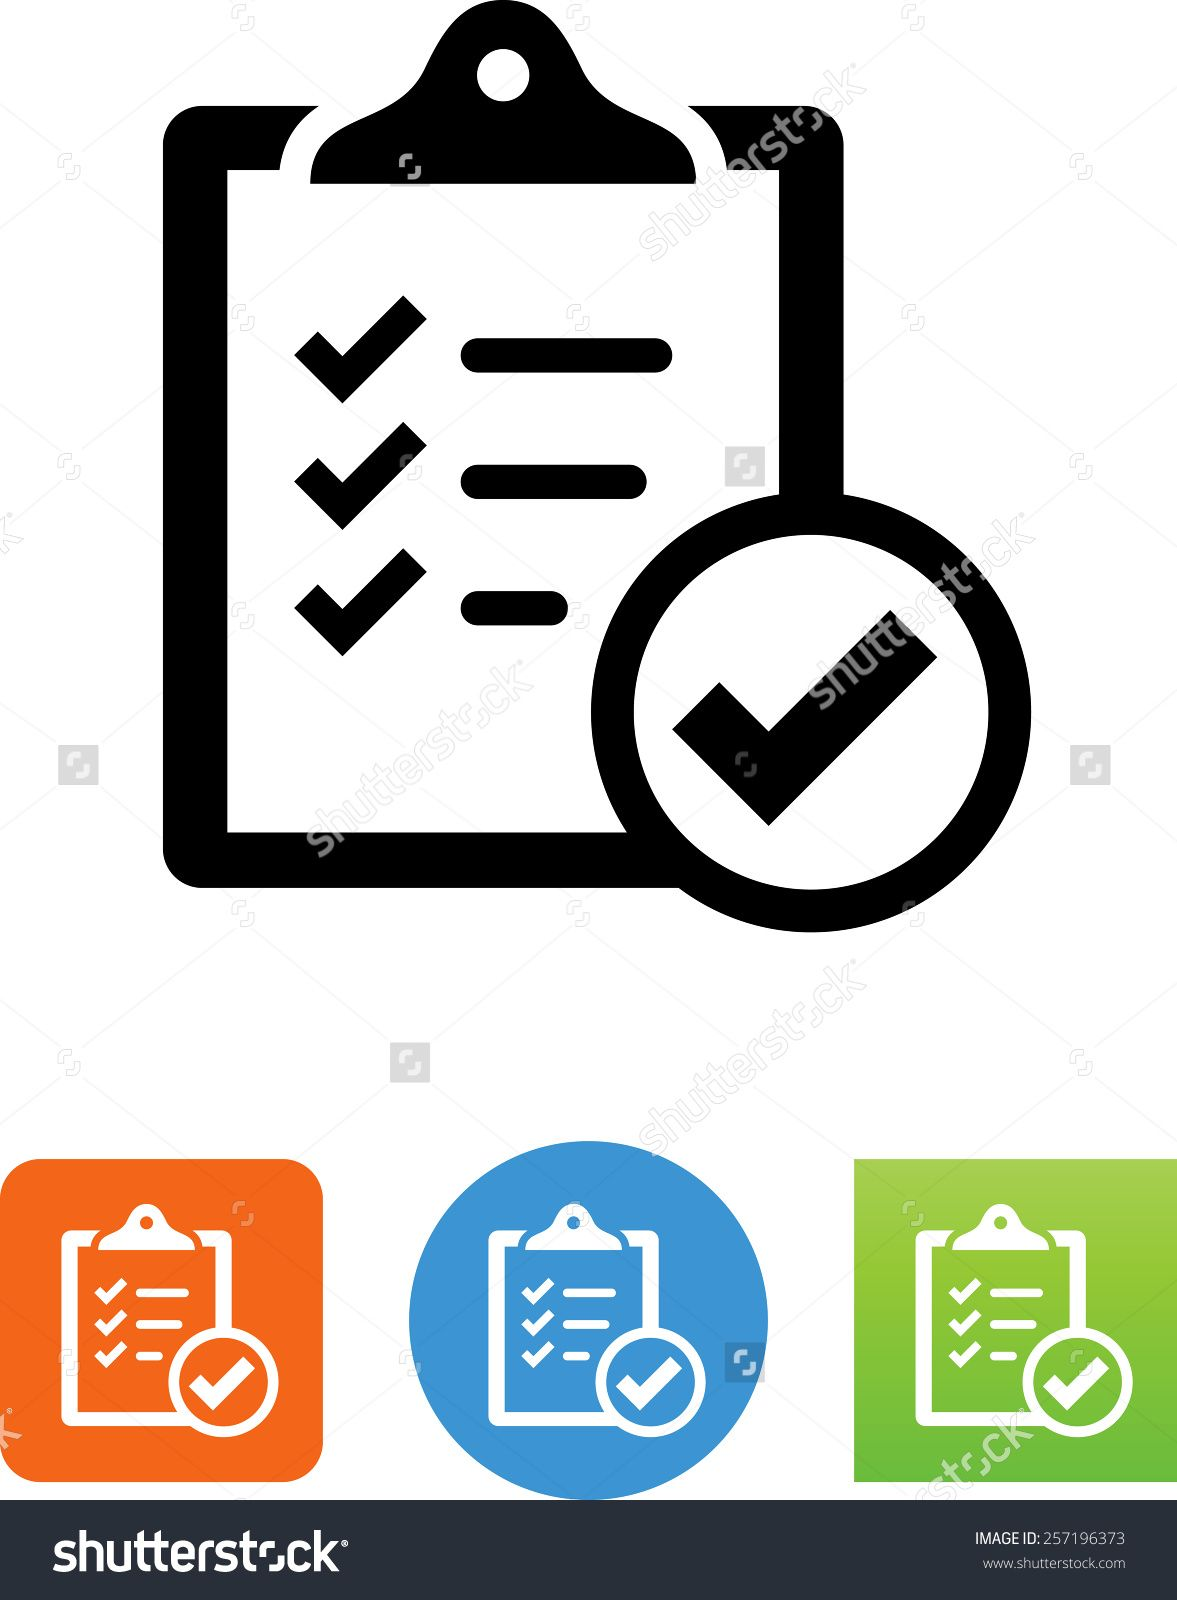 Clipboard with check mark symbol. Web design projects